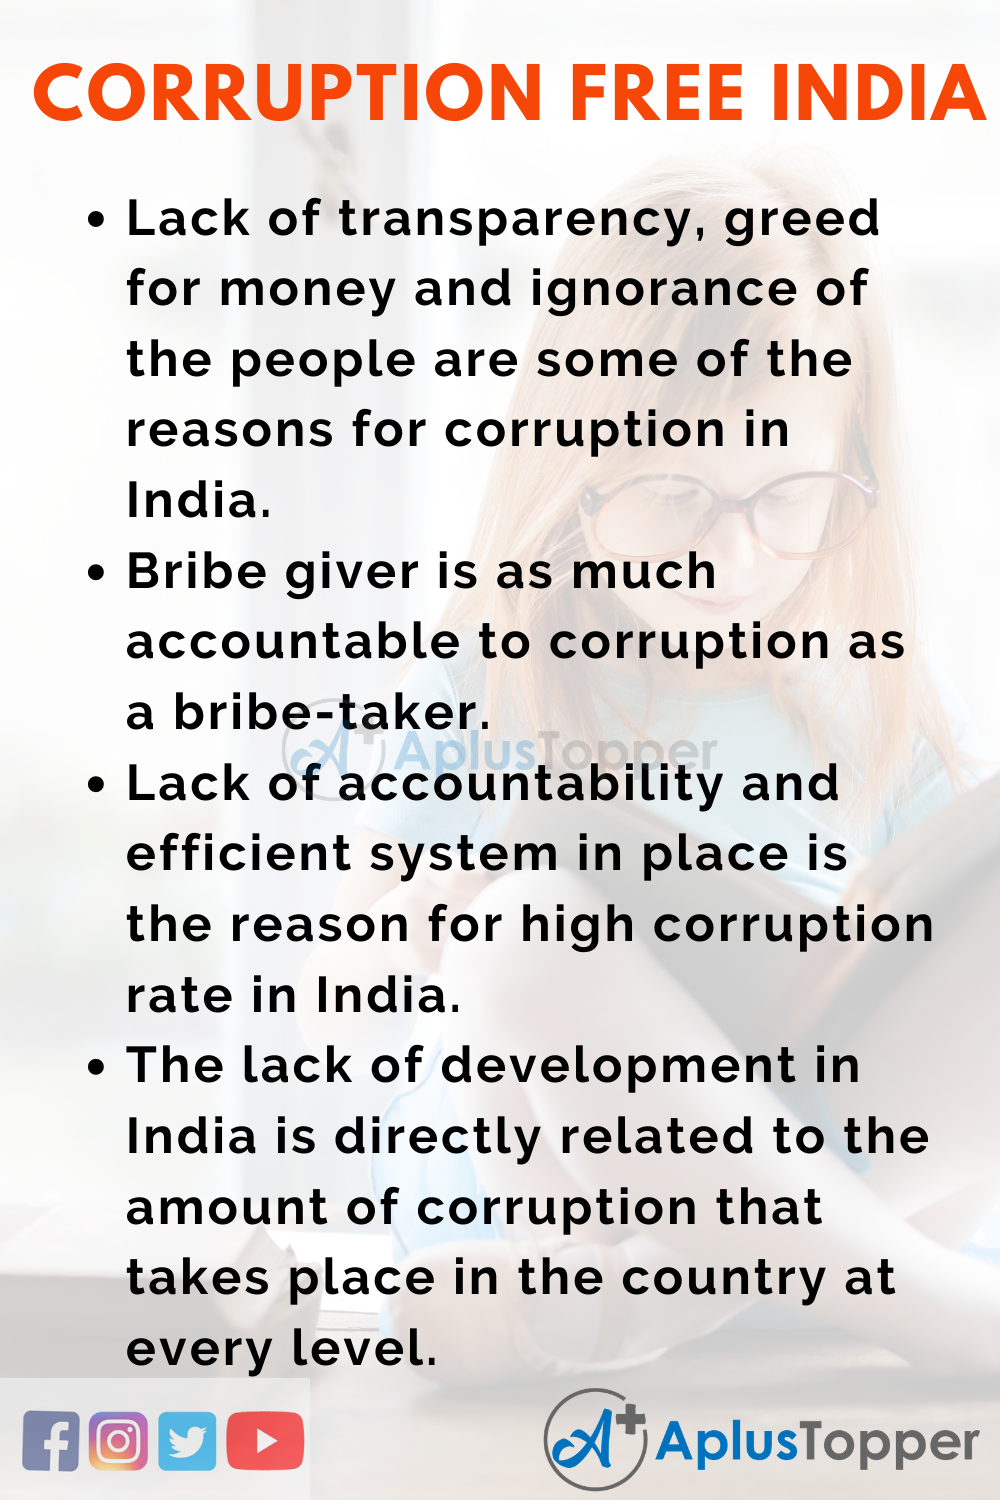 Essay About Corruption Free India